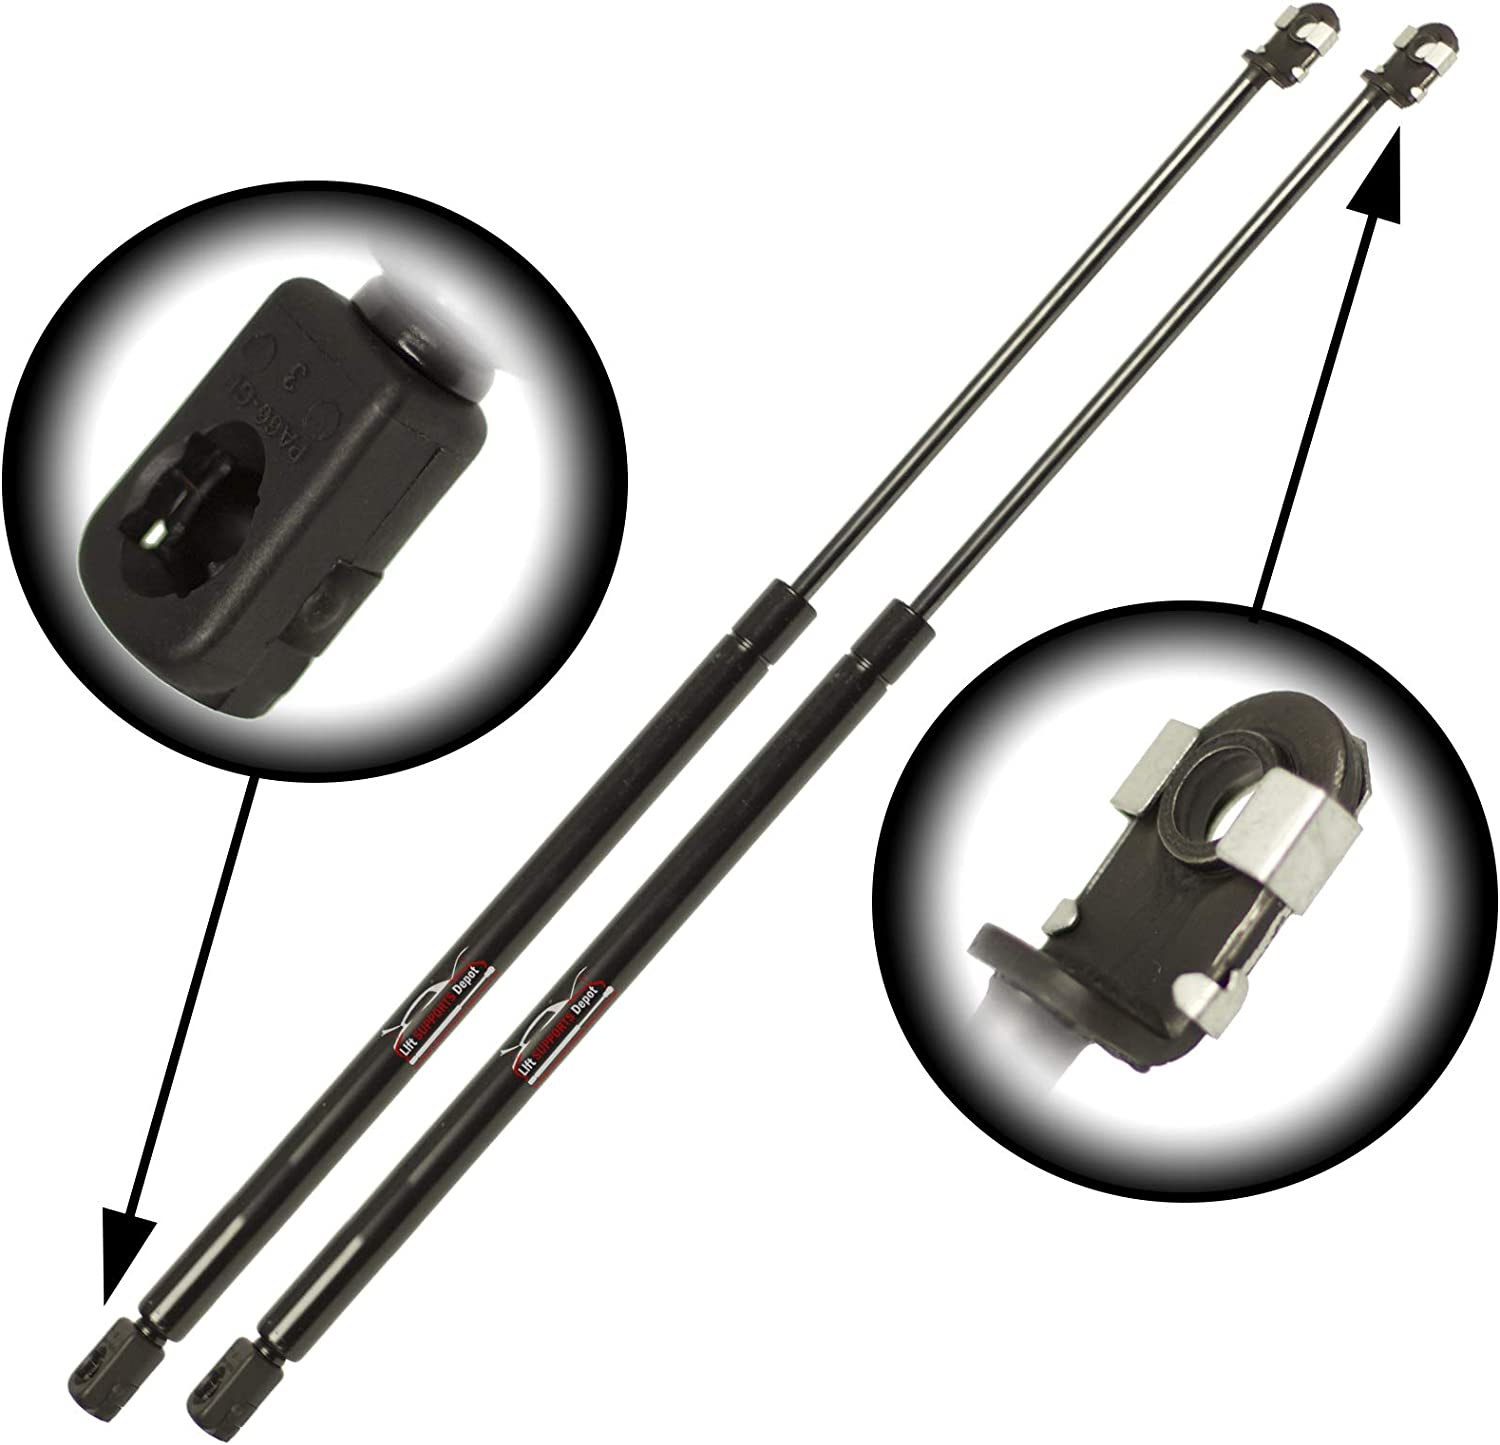 Qty 2 Fits IS300 IS250 IS350 2006 To 2015 Rear Trunk Lift Supports excluding convertible